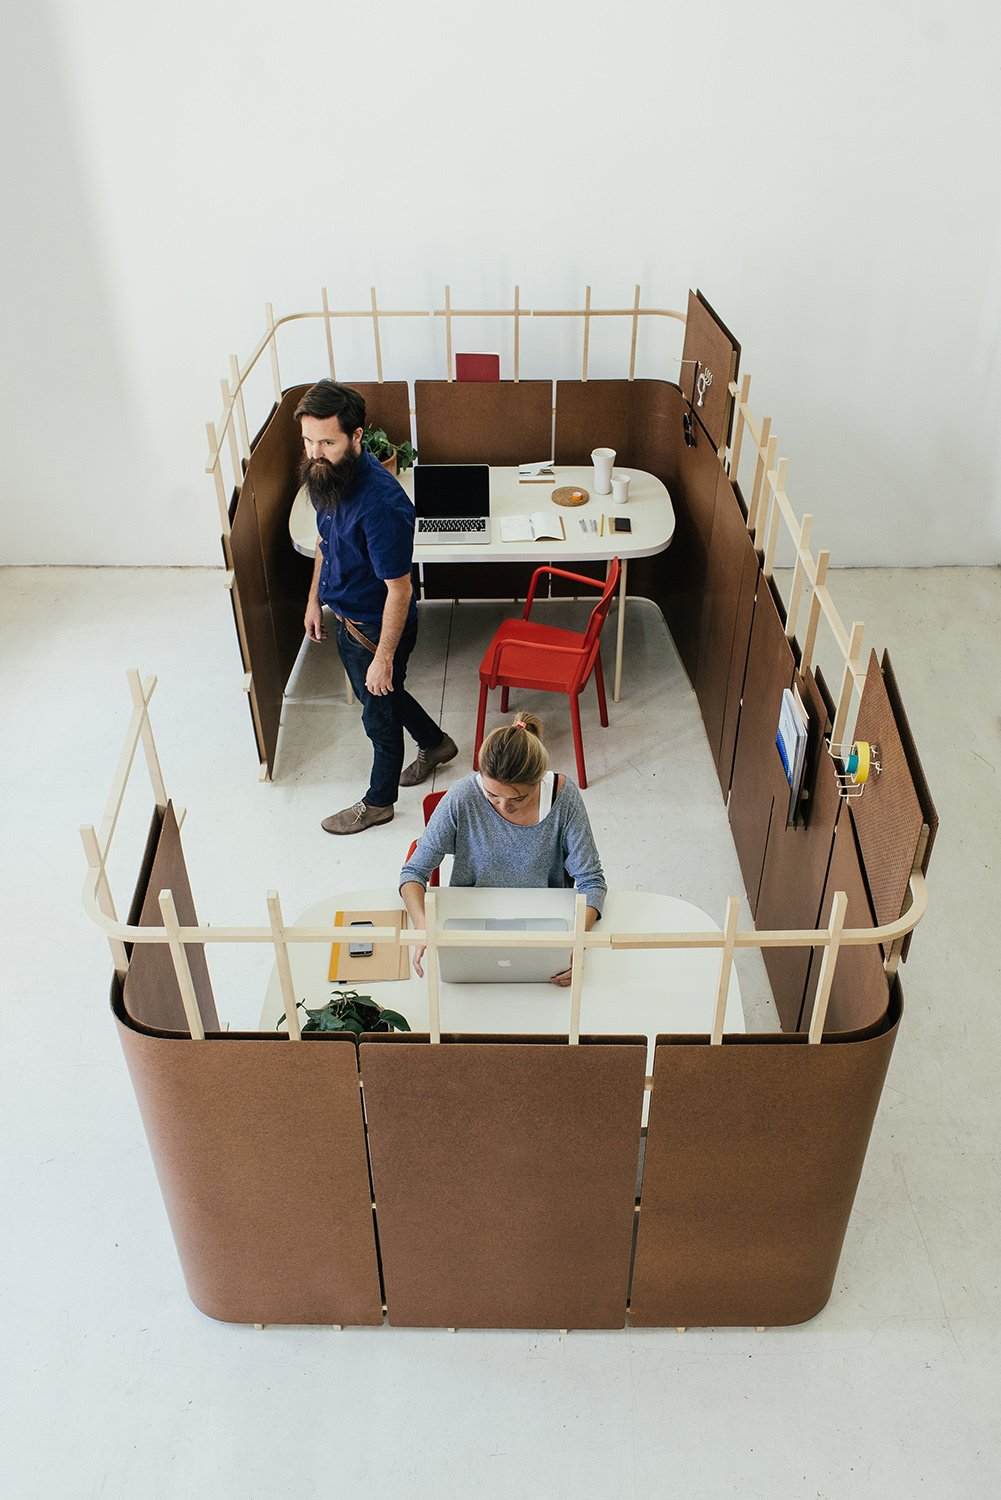 Collaborating with Arauco, the Andes House tested the durability of cholguán by exposing it to liquid. To their surprise, they found the material survived but bent gently, revealing that it could be shaped to divide offices.  Office from A Good-Looking Office System Made from an Everyday Packing Material